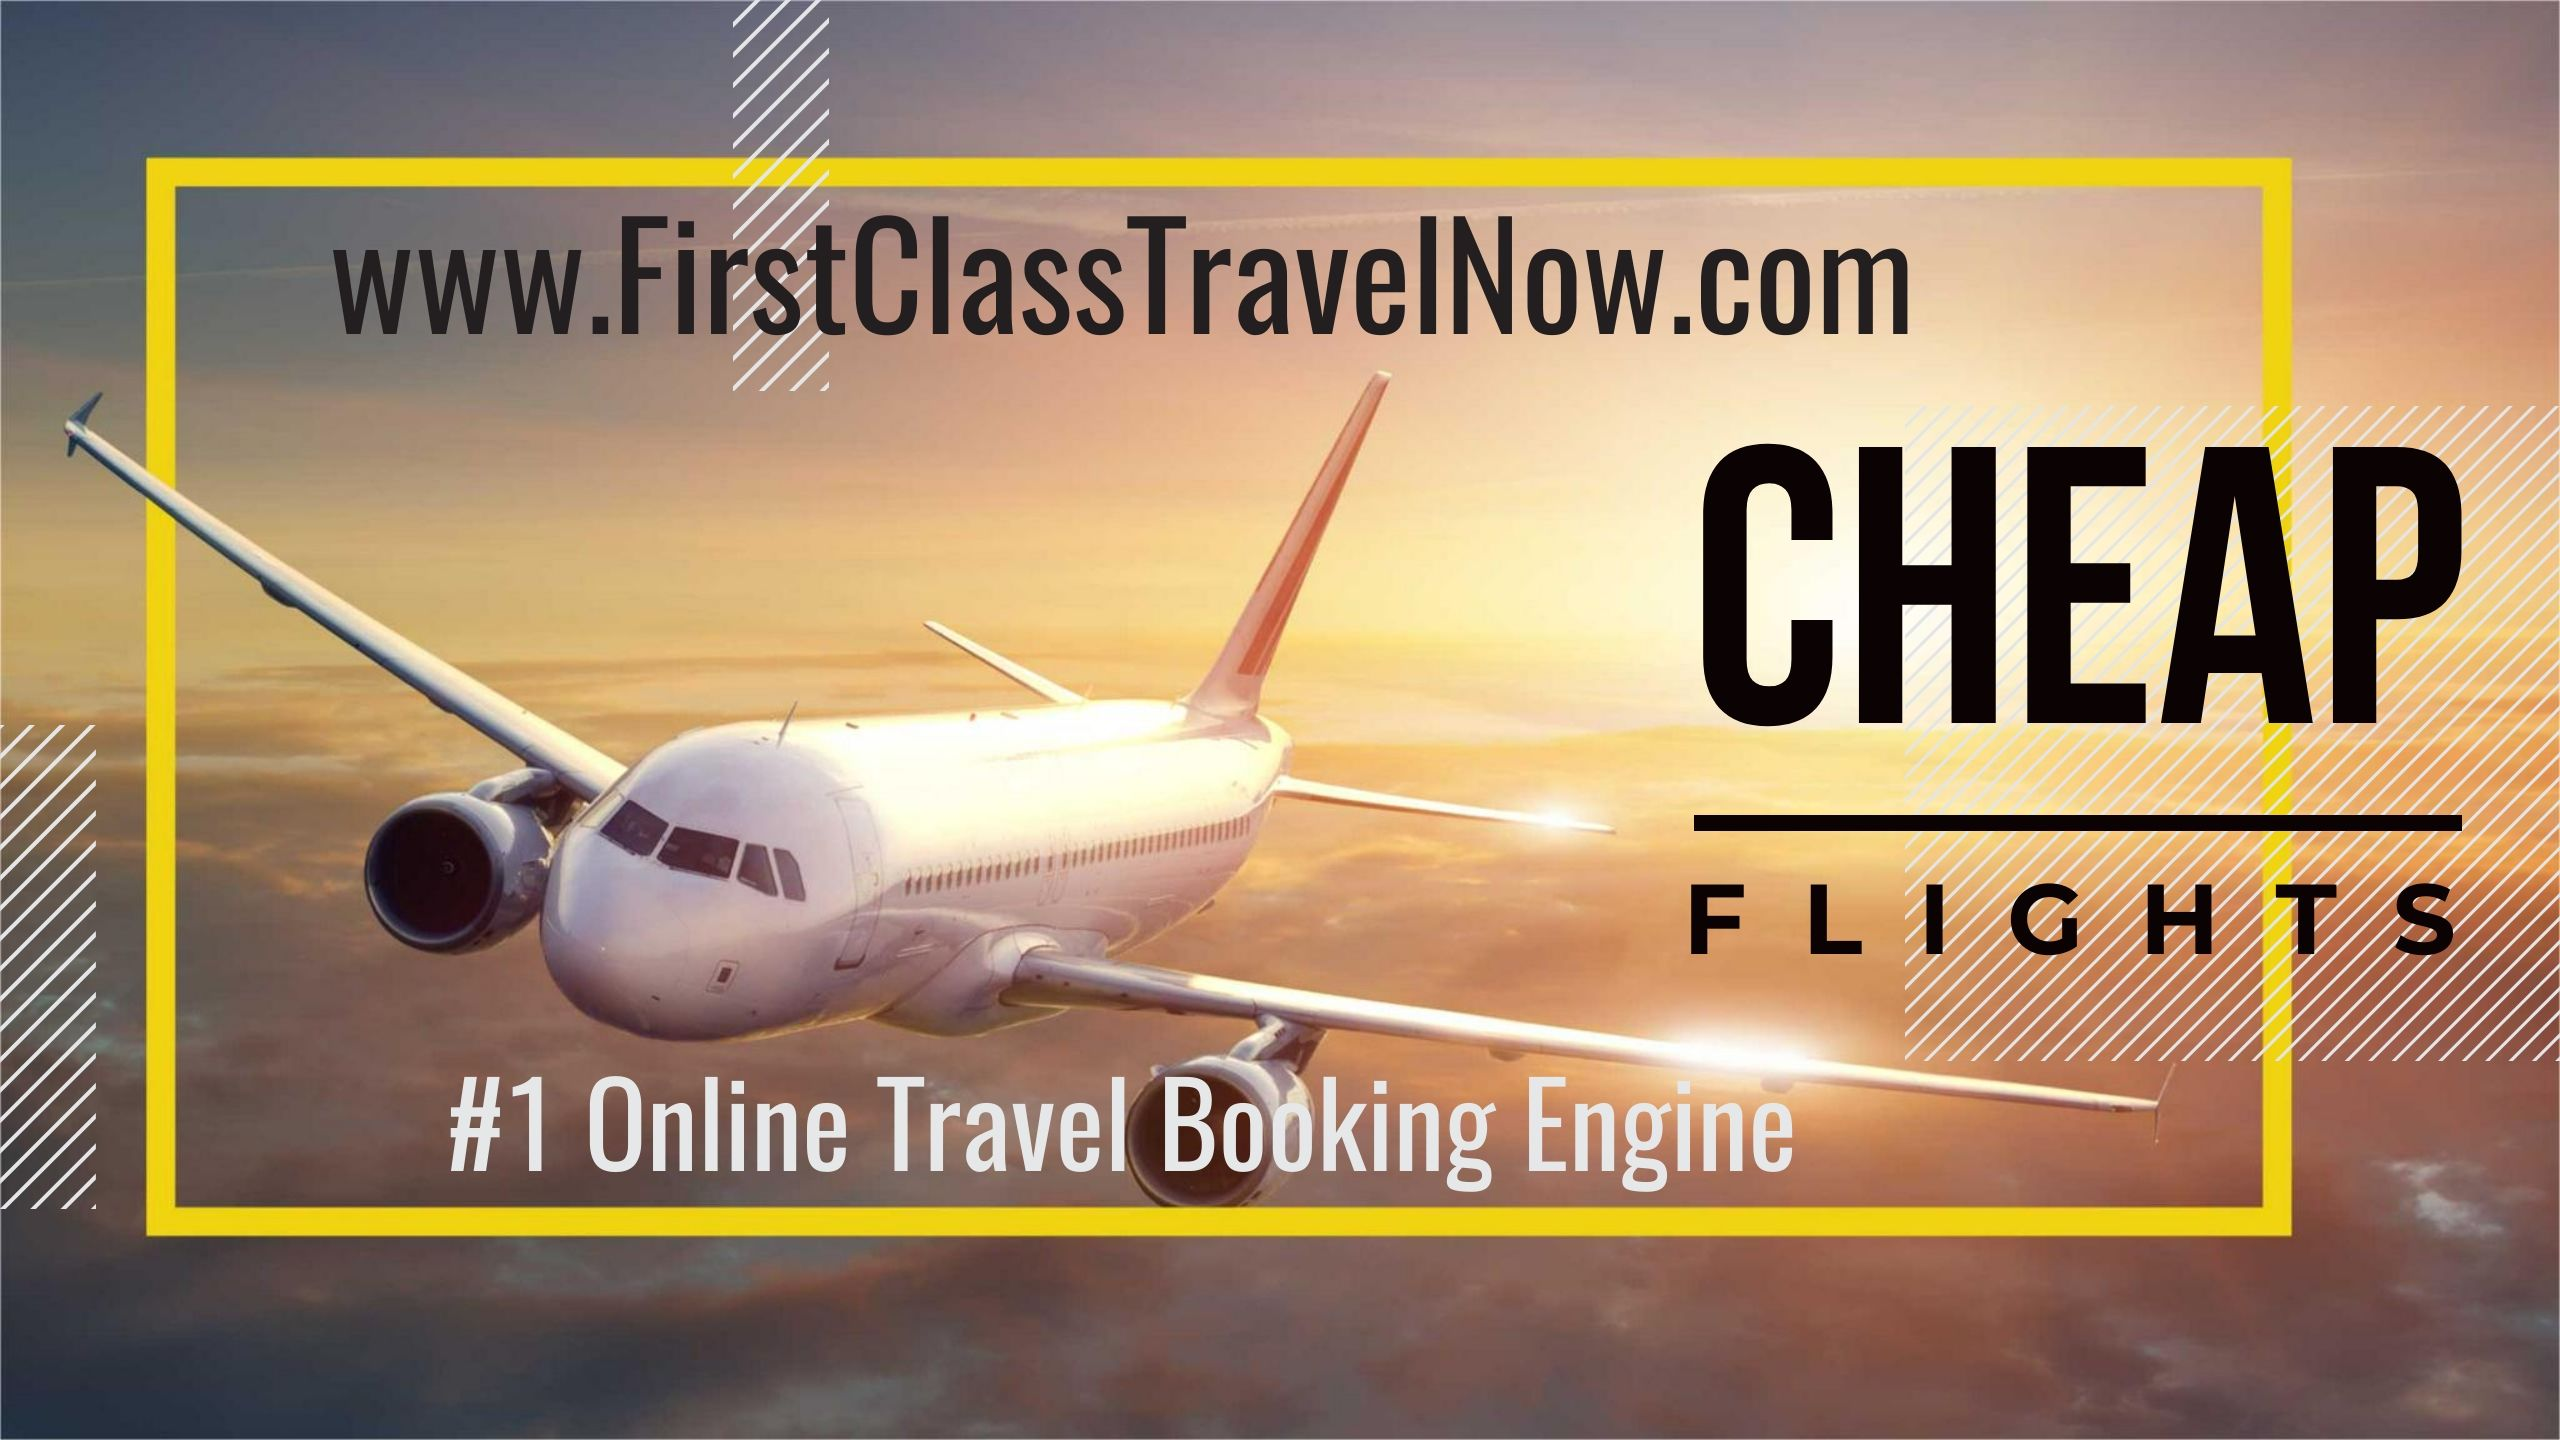 www.FirstClassTravelNow.com Cheap Flights and Hotel Stays Domestic and International, we beat all prices of the More popular Travel Booking Website services. Visit us and feel free to compare. #CheapFlights #CheapHotels #InstantBooking #FirstClassTravelNow #CheapFlights #LowPricedHotelStays #CheapAirareDomesticInternational #TravelBookingWebsite #VisitusFirstClassTravelNow #compareAirfare #BookCheapFlights #CheapHotels #InstantBooking #FirstClassTravelNowBookingSevices